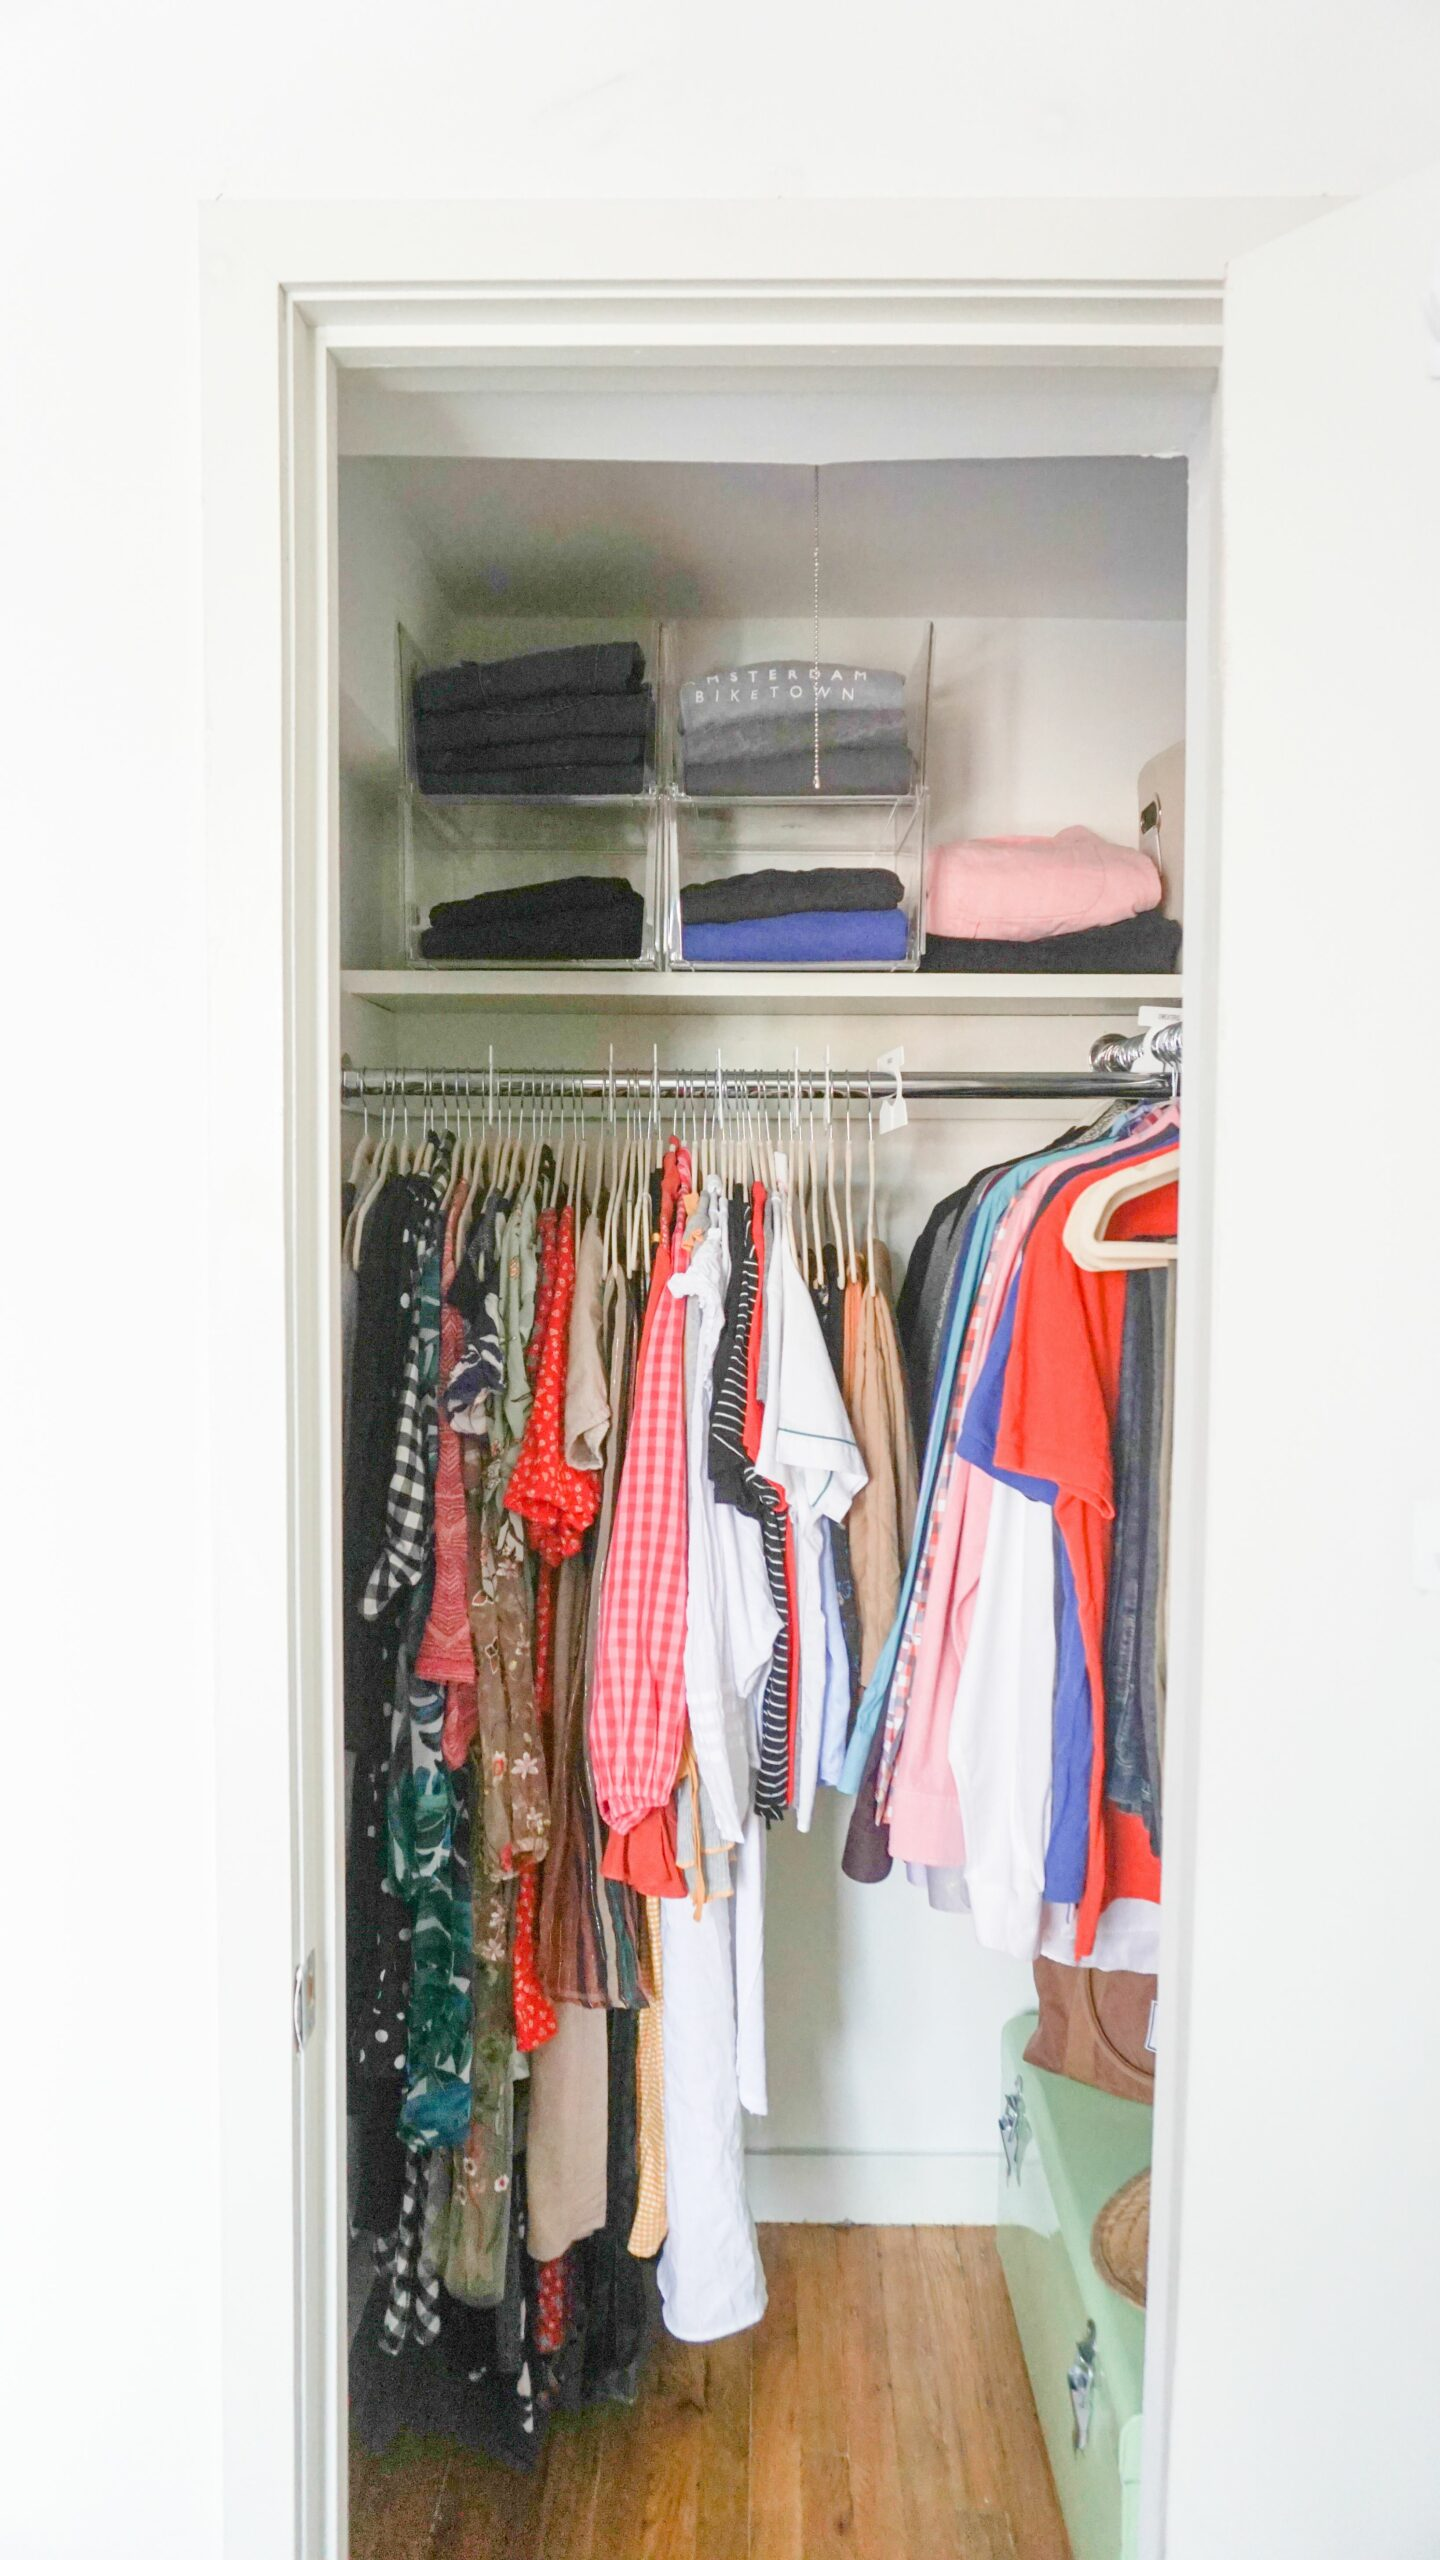 How To Organize A Small Closet, According To A Professional Organizer